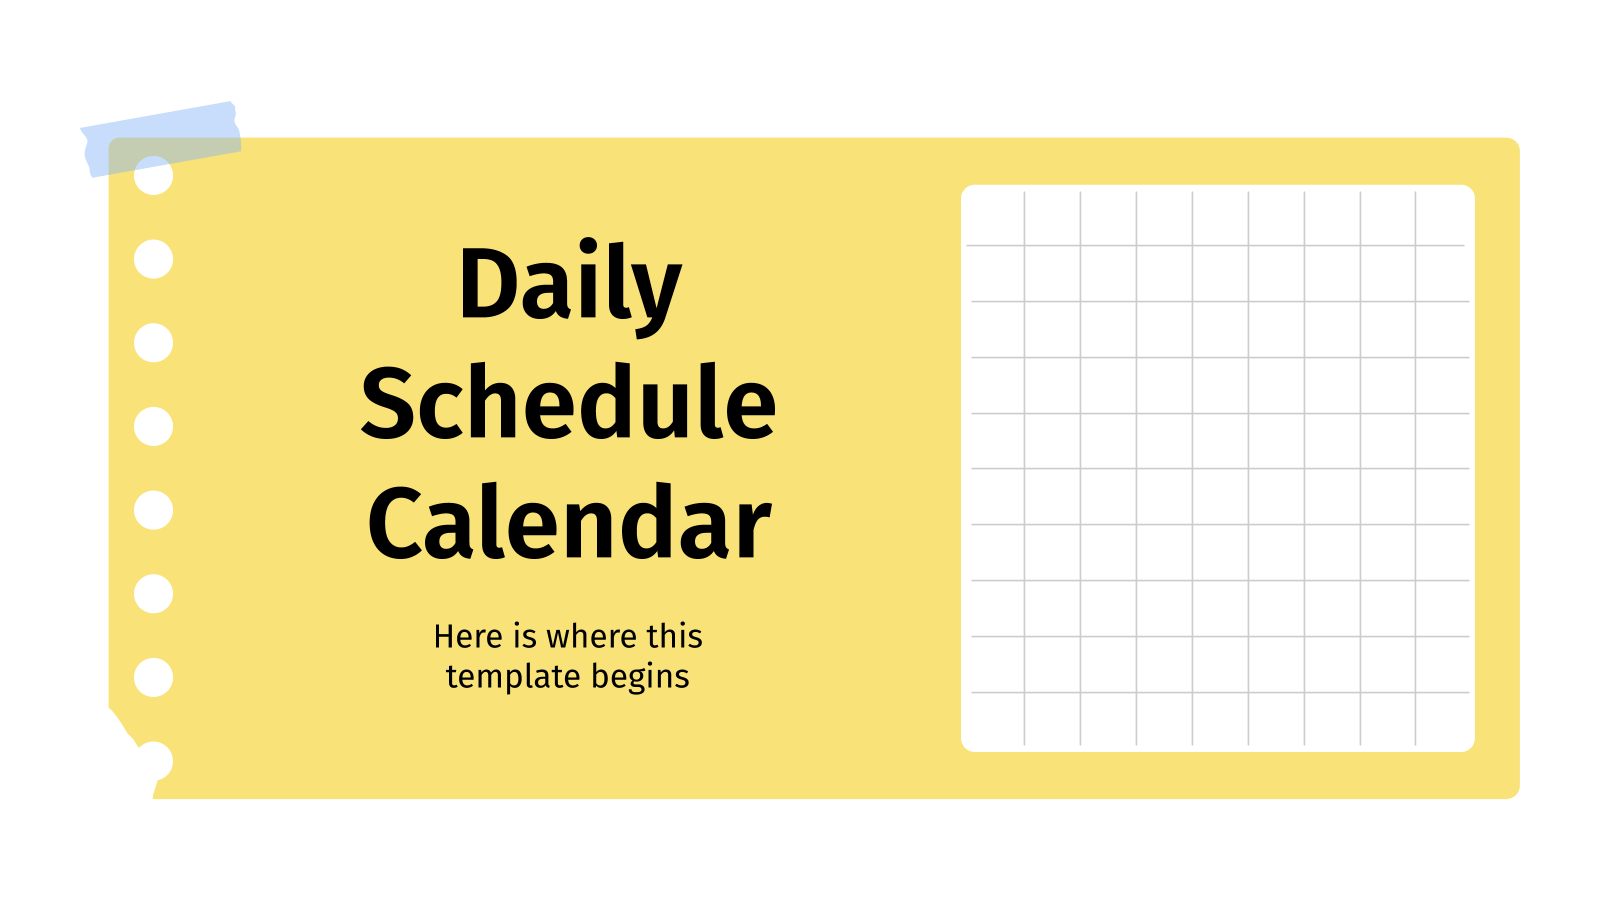 Daily Schedule Calendar presentation template